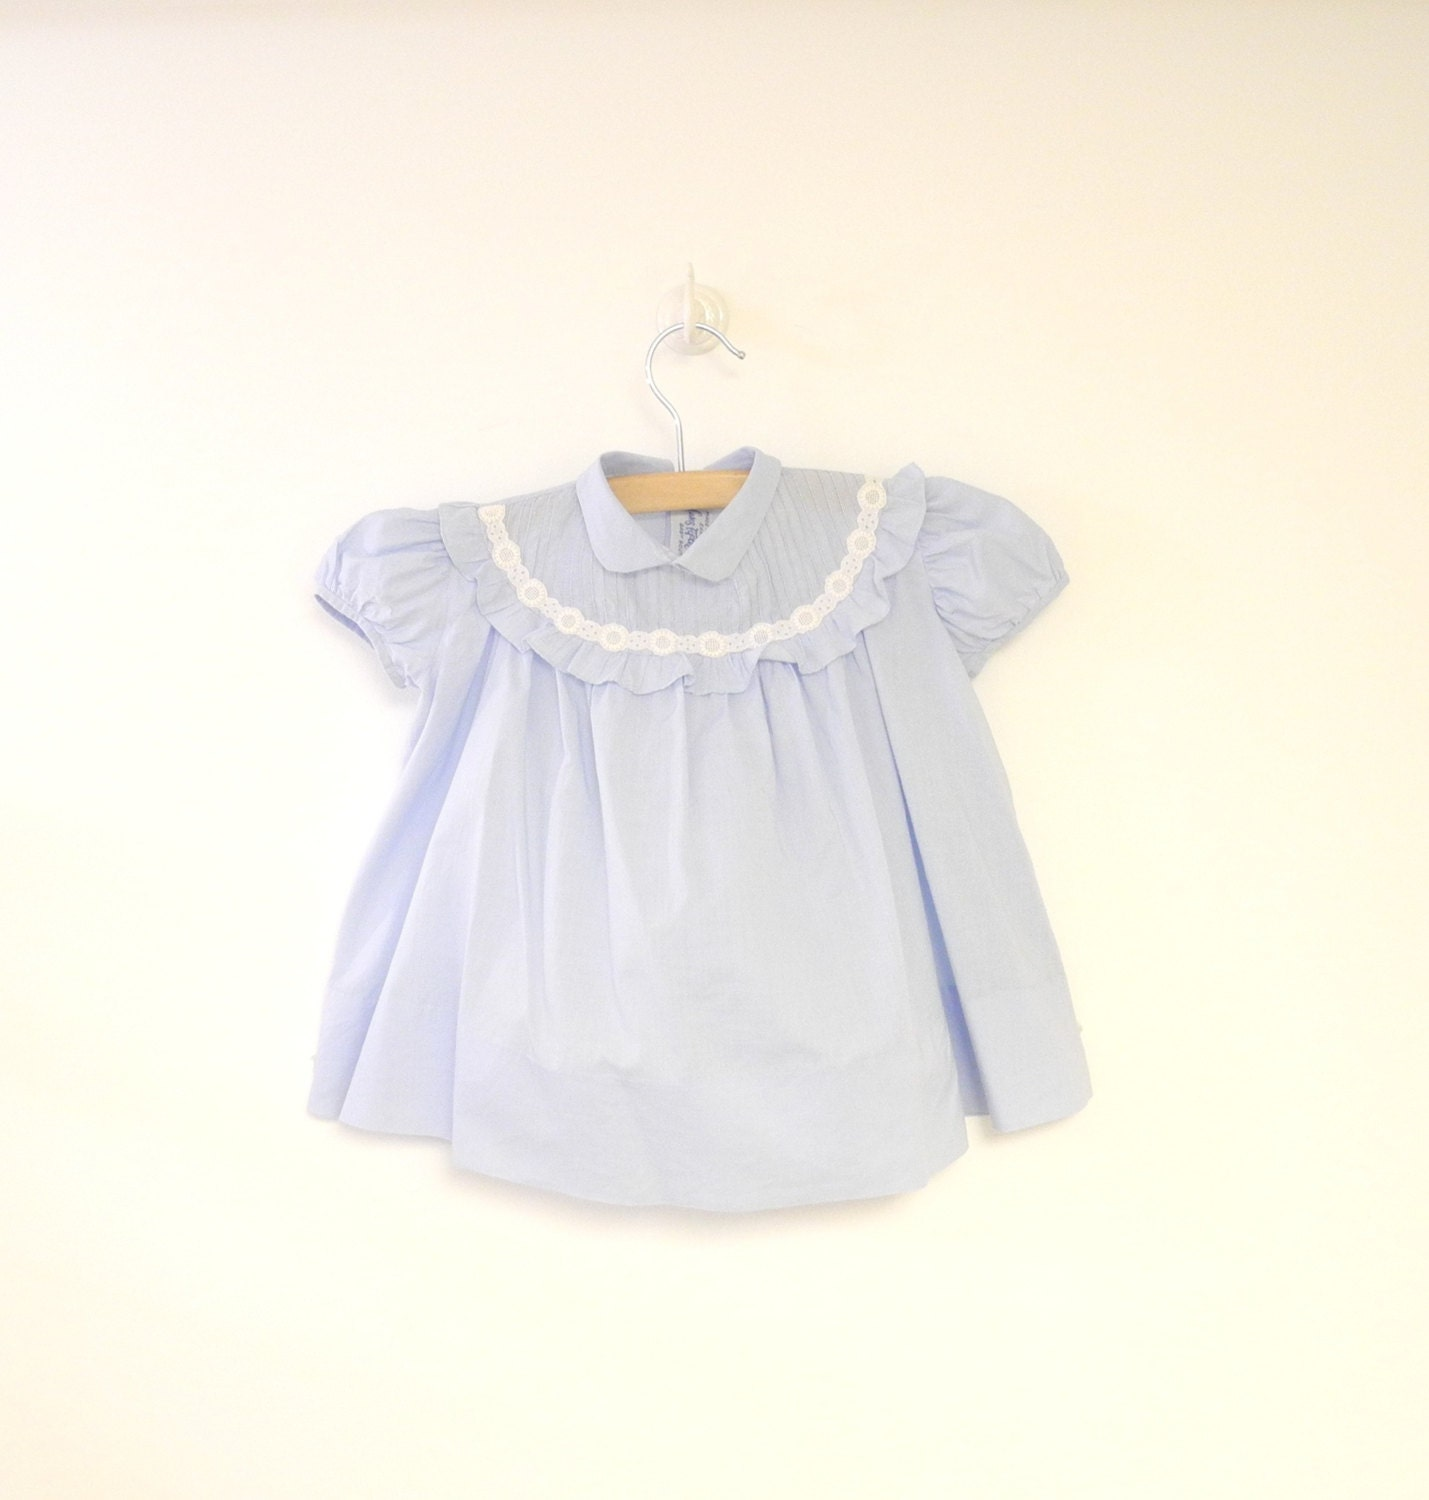 Kids 1950s Clothing & Costumes: Girls, Boys, Toddlers  |1950 Baby Stuff